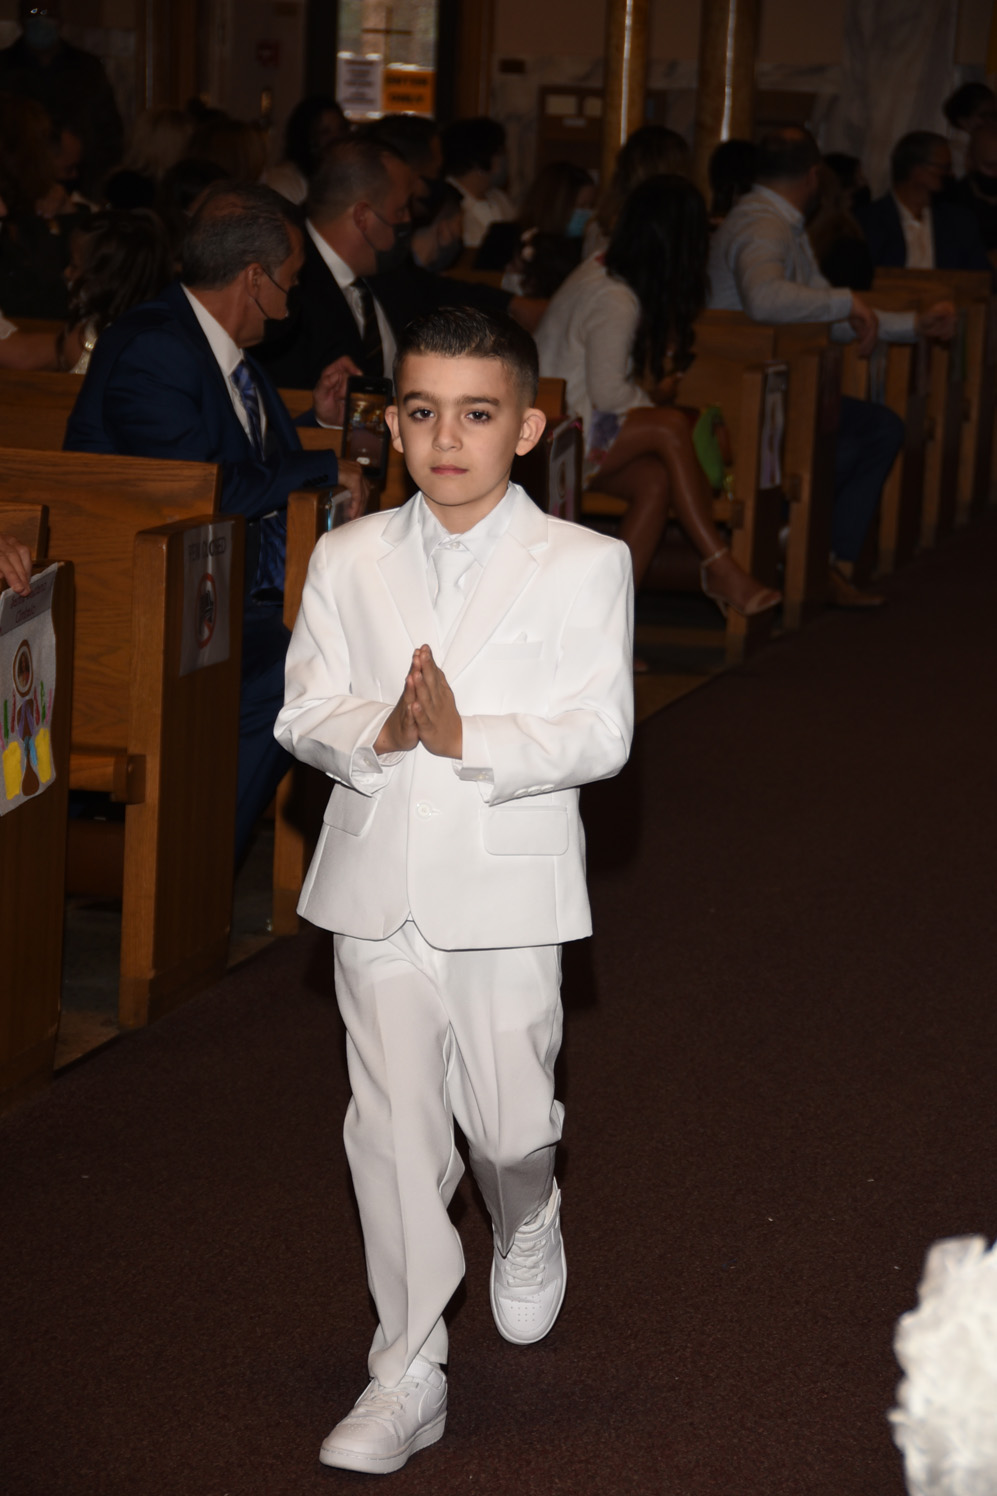 FIRST-COMMUNION-MAY-2-2021-1001001161